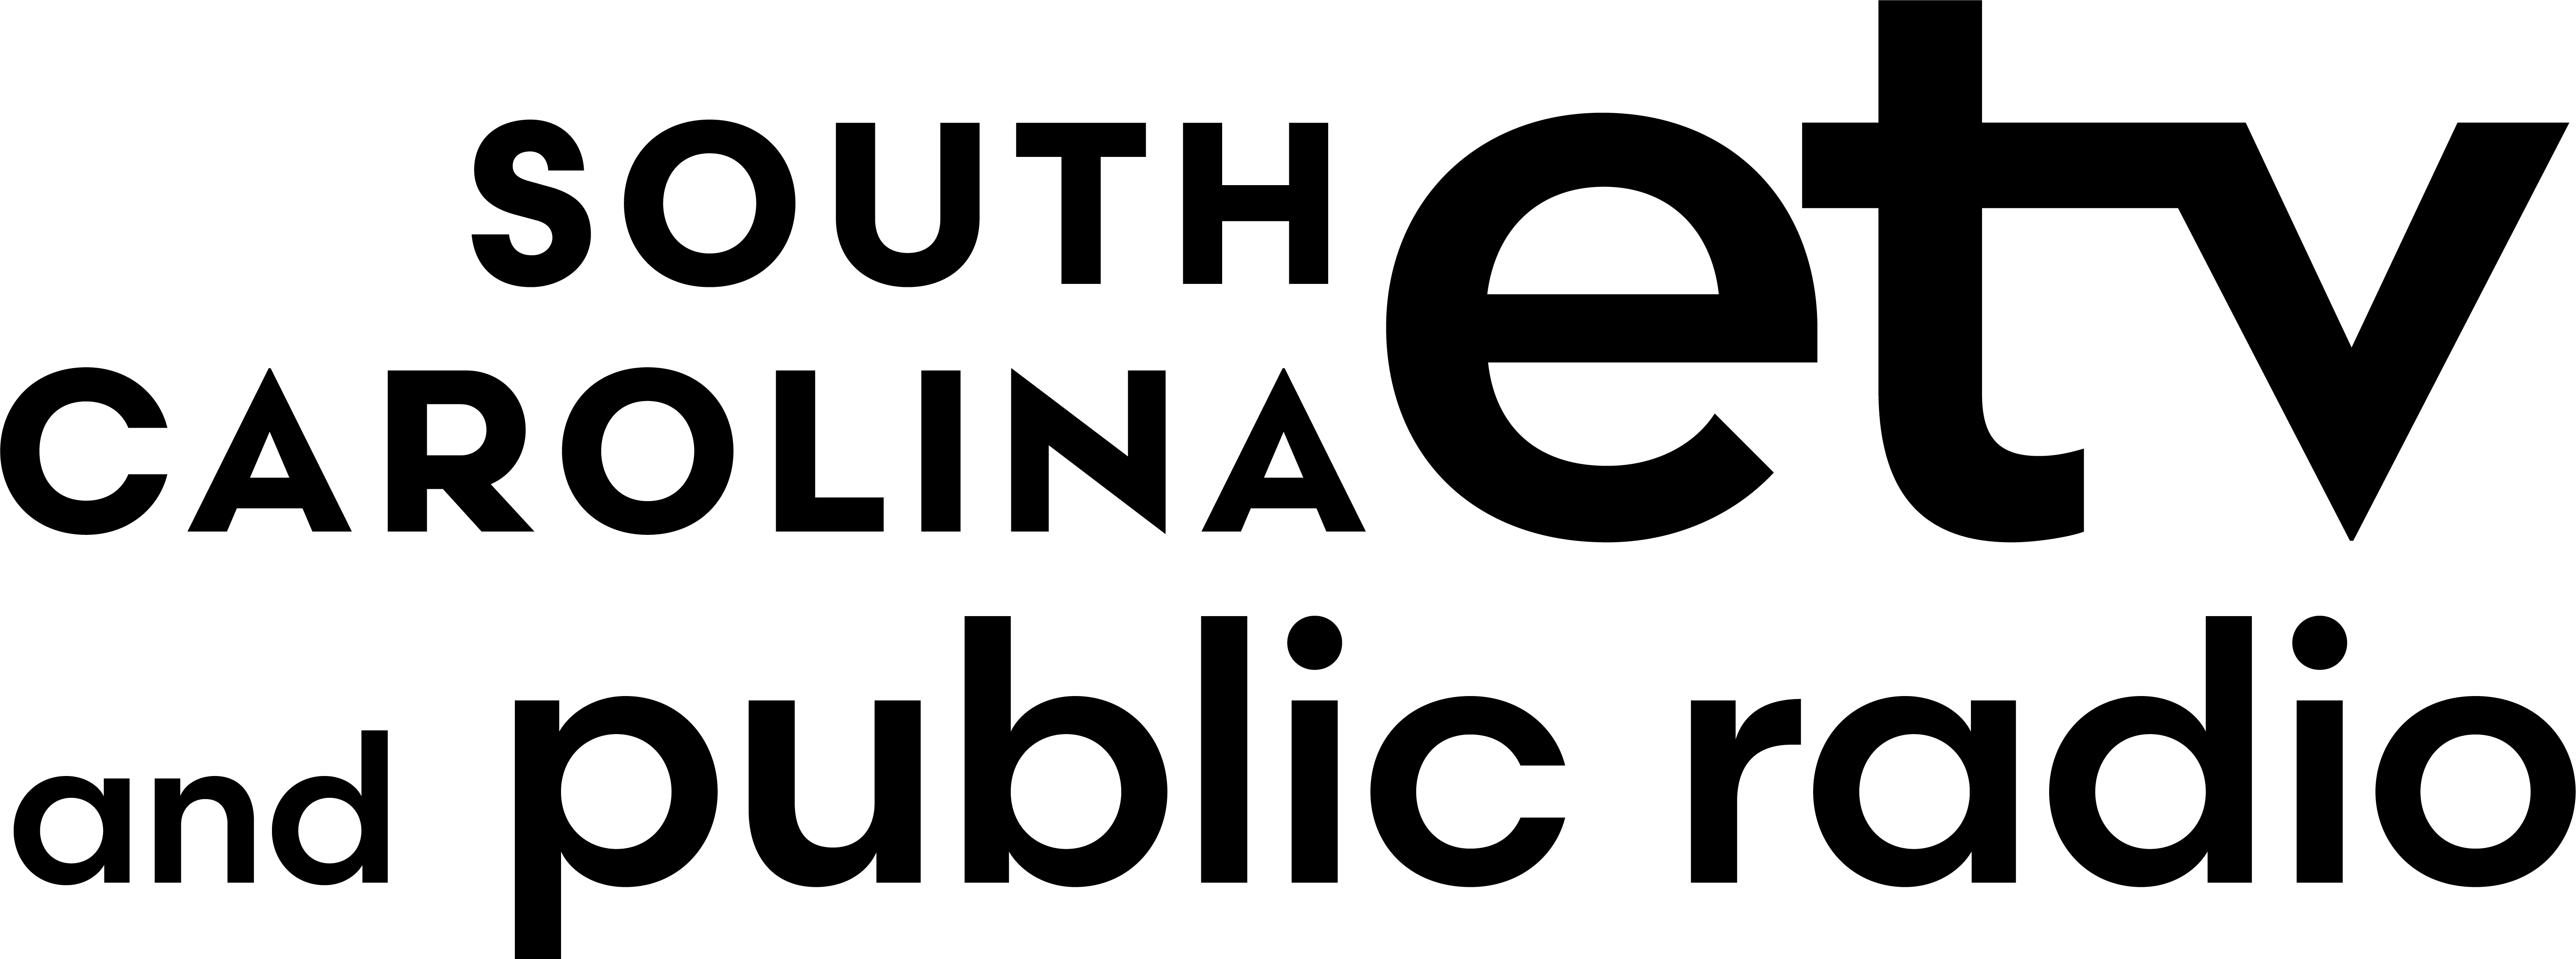 South Carolina ETV & South Carolina Public Radio